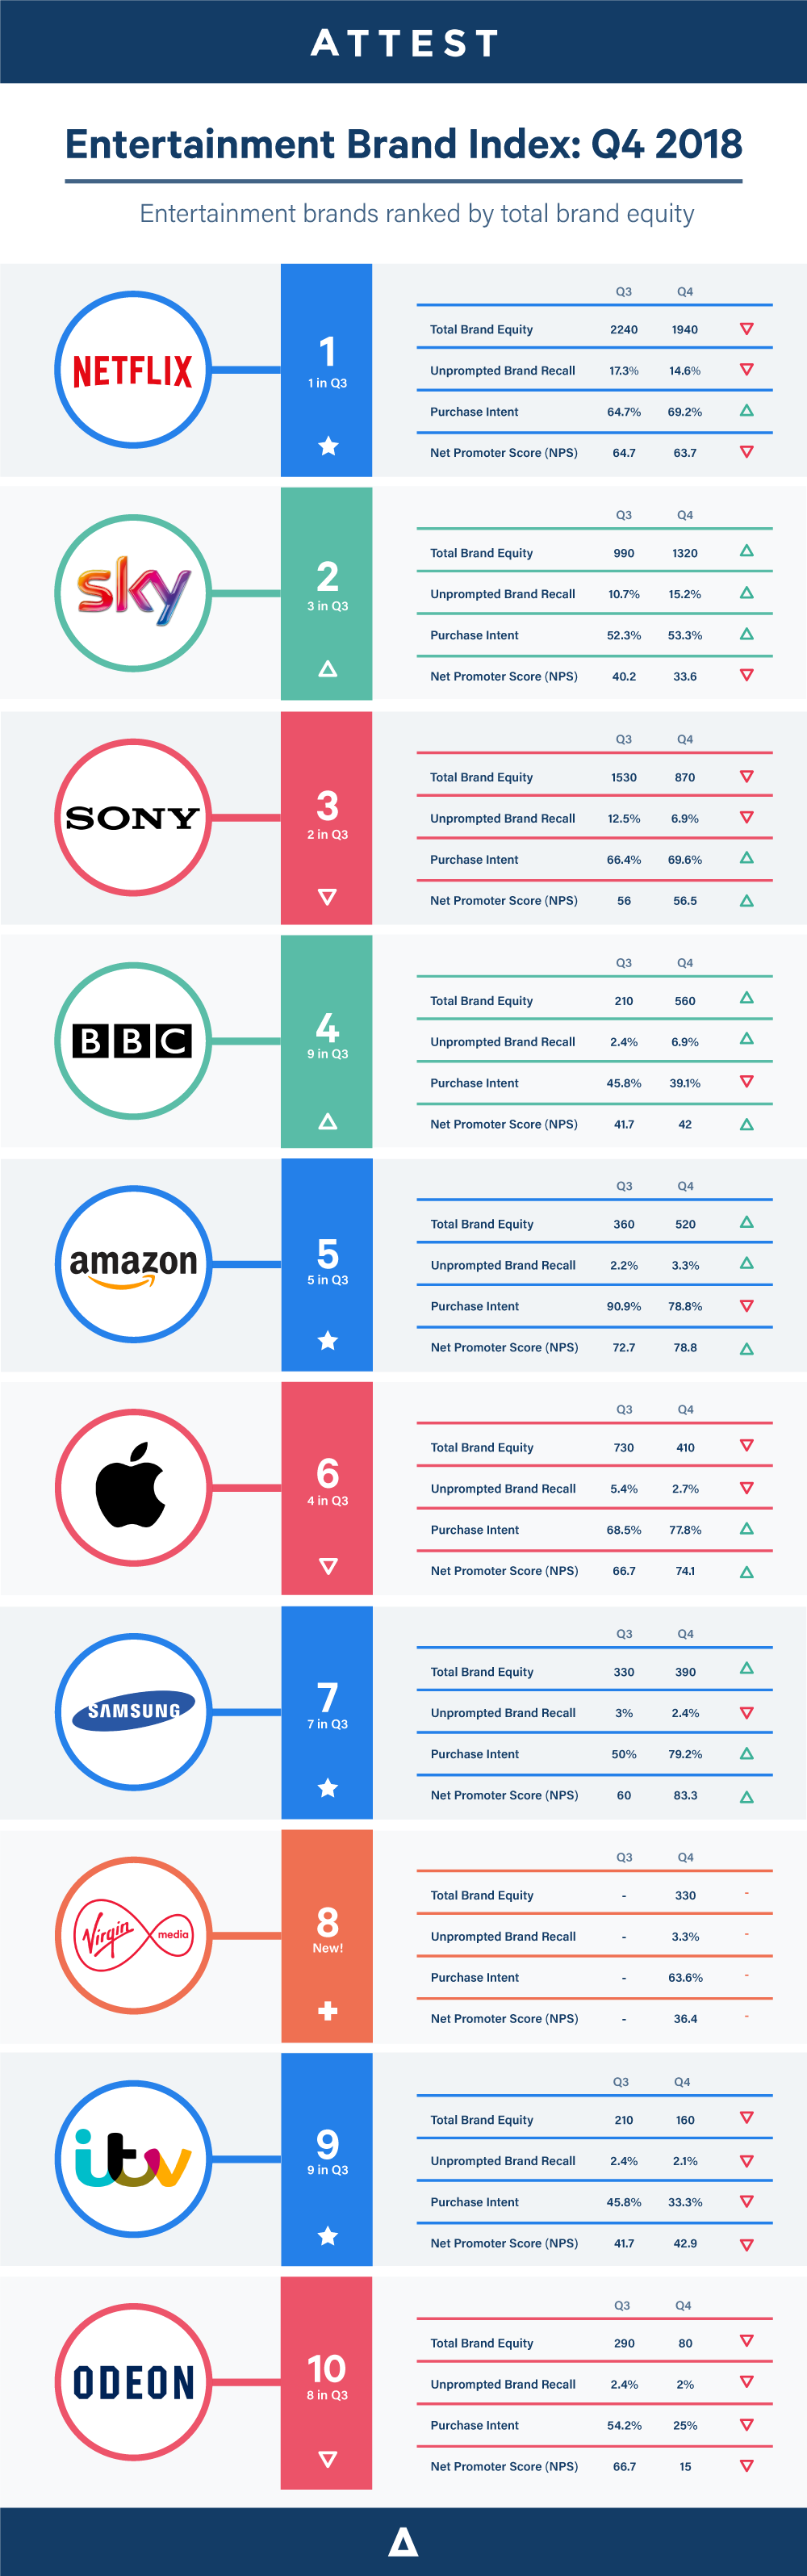 Brand-index-entertainment-2018-Q4